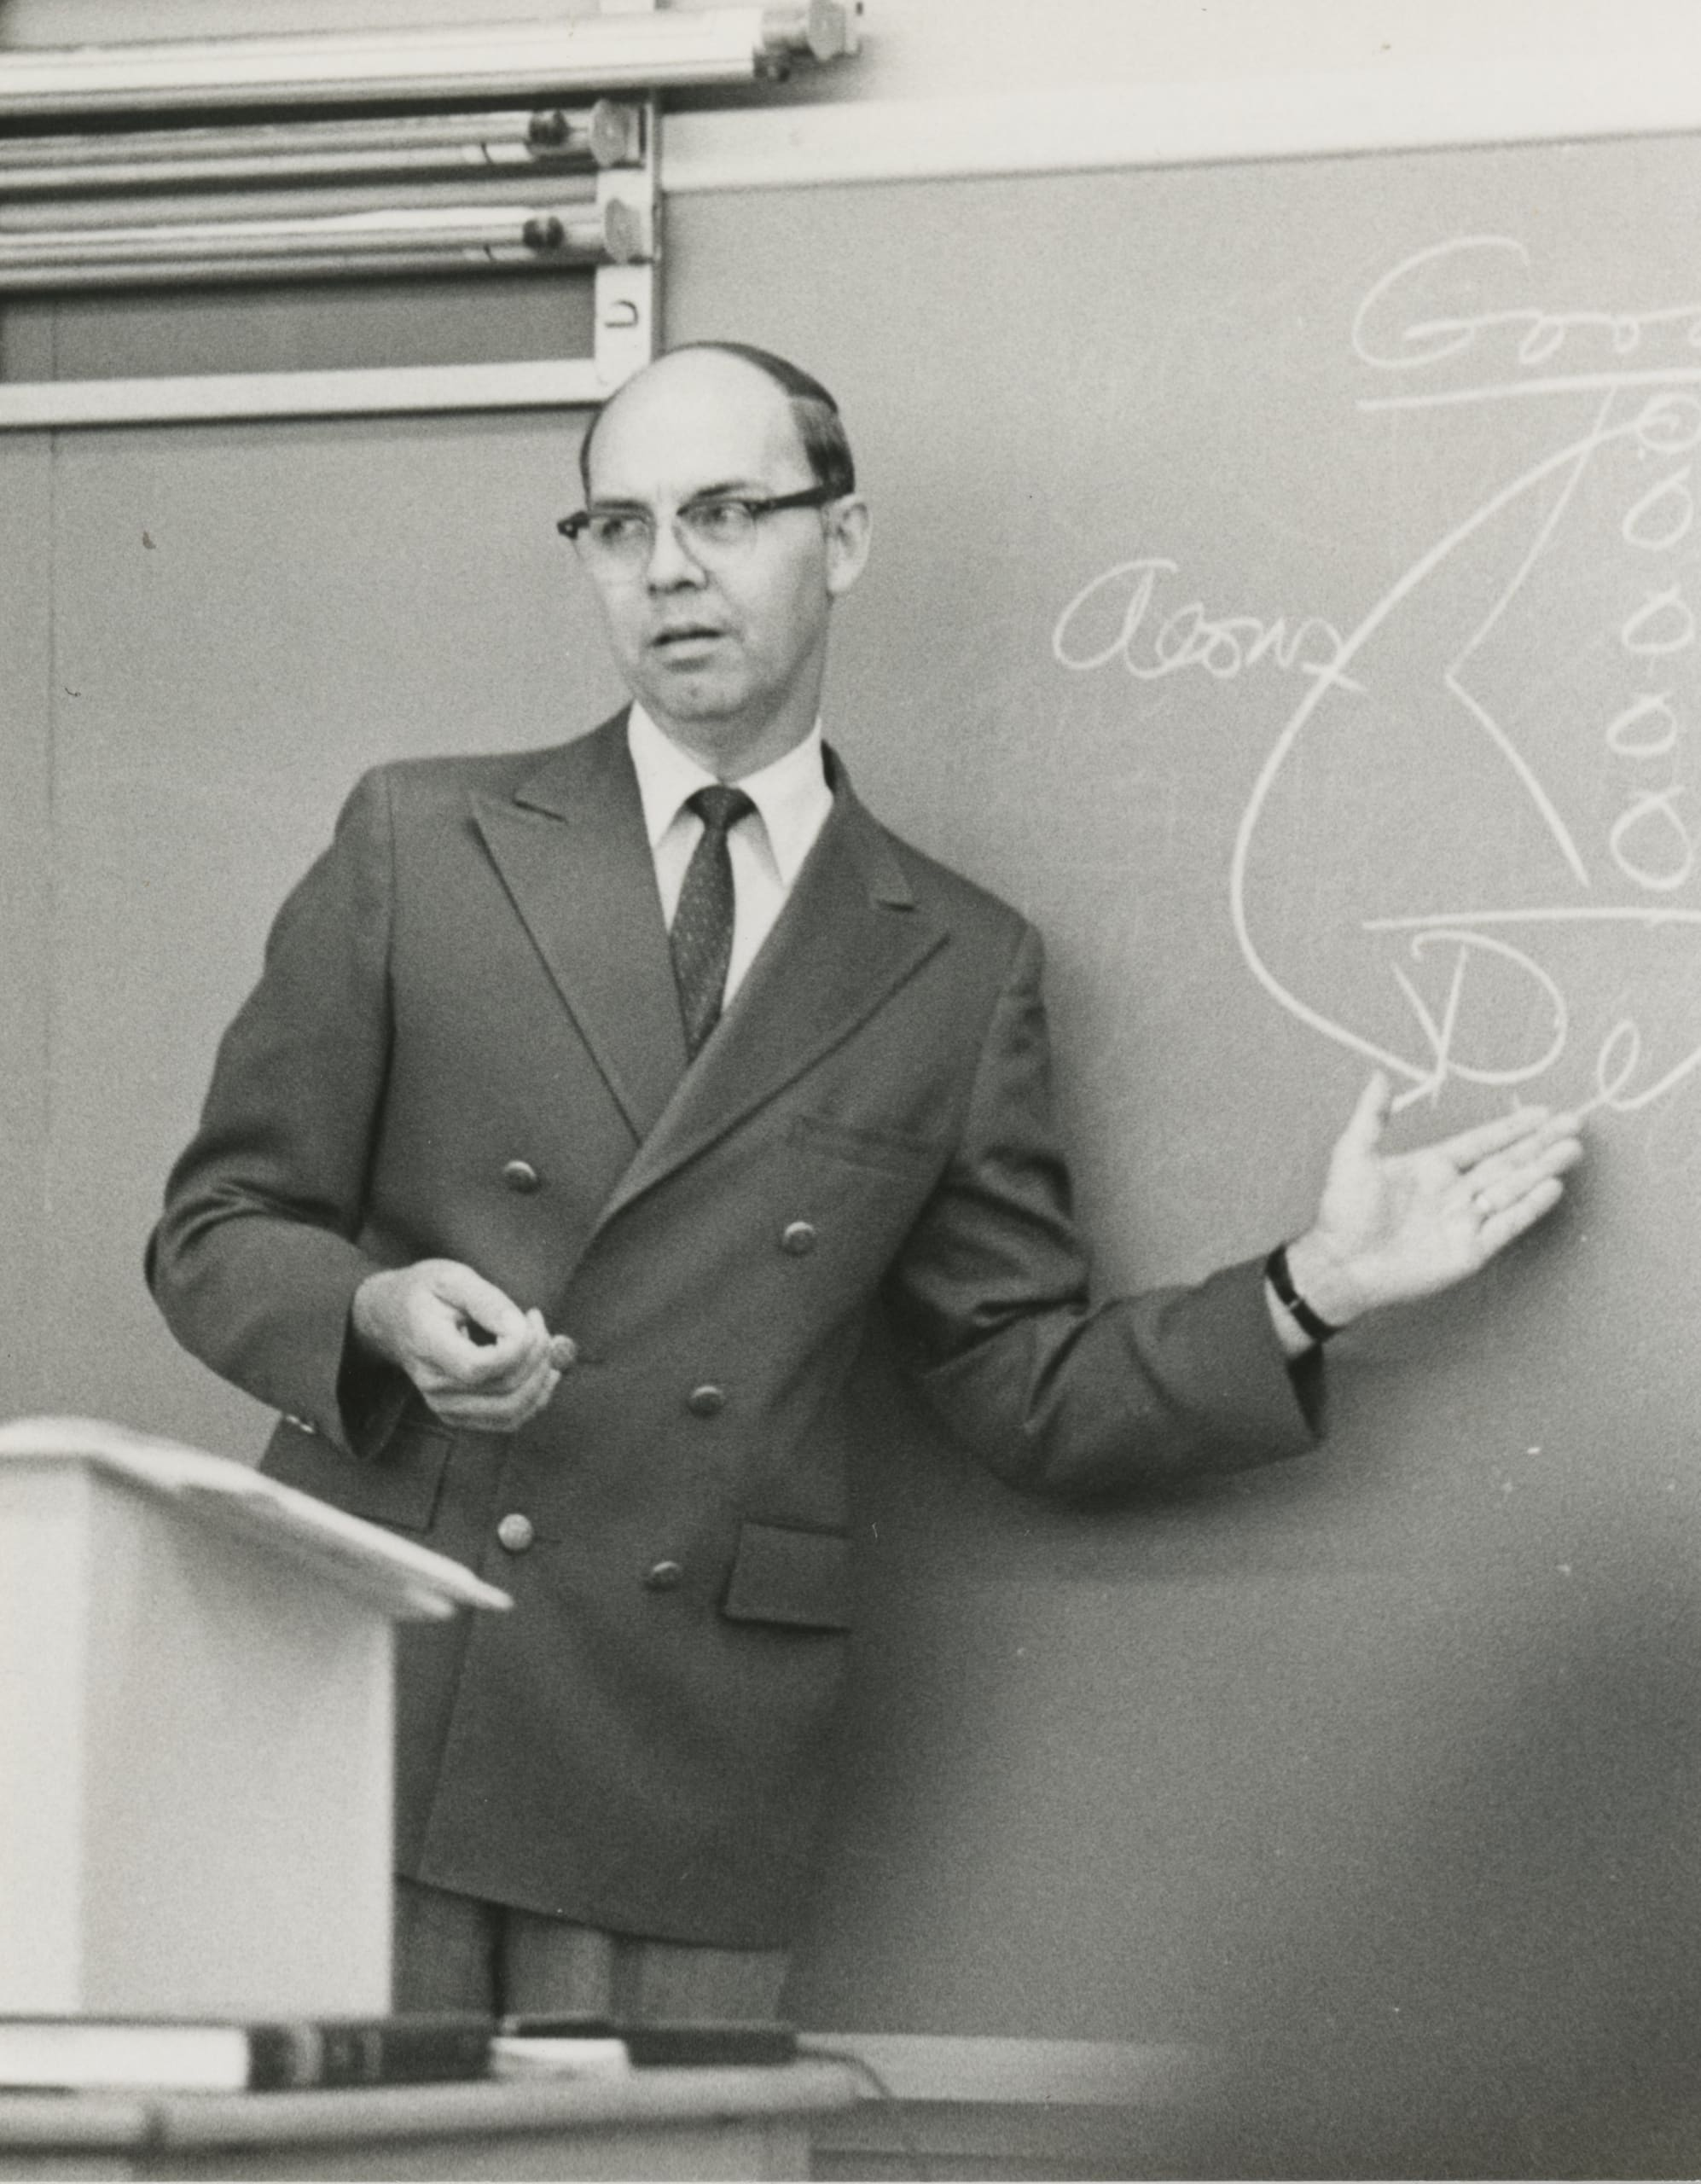 Dr. Lightner pointing to wording written on a chalkboard